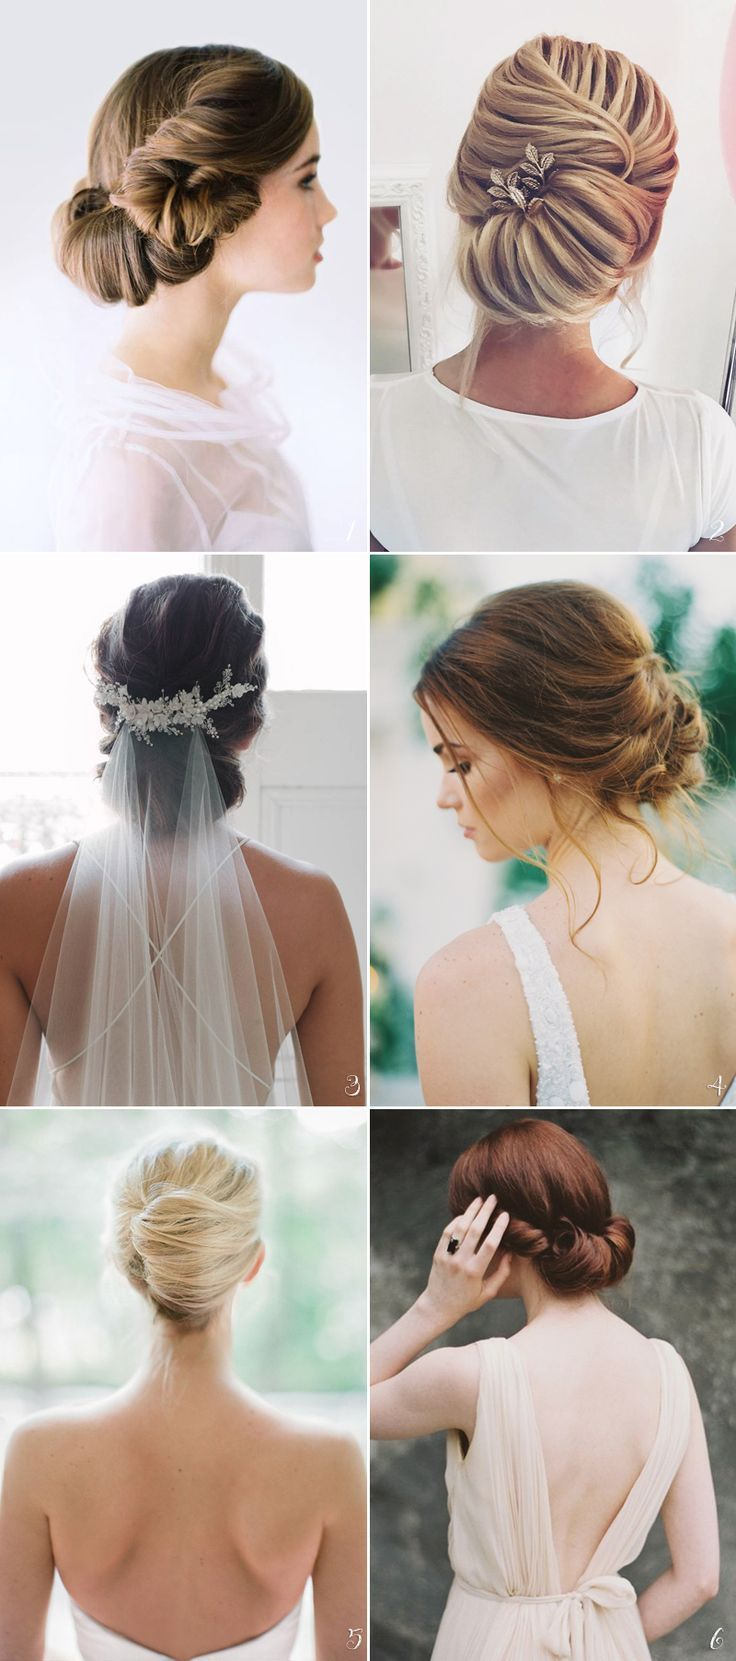 With the weather being less humid, fall brides have a wider range of hairstyles and accessories to consider. From classic up-dos, statement braids, to...